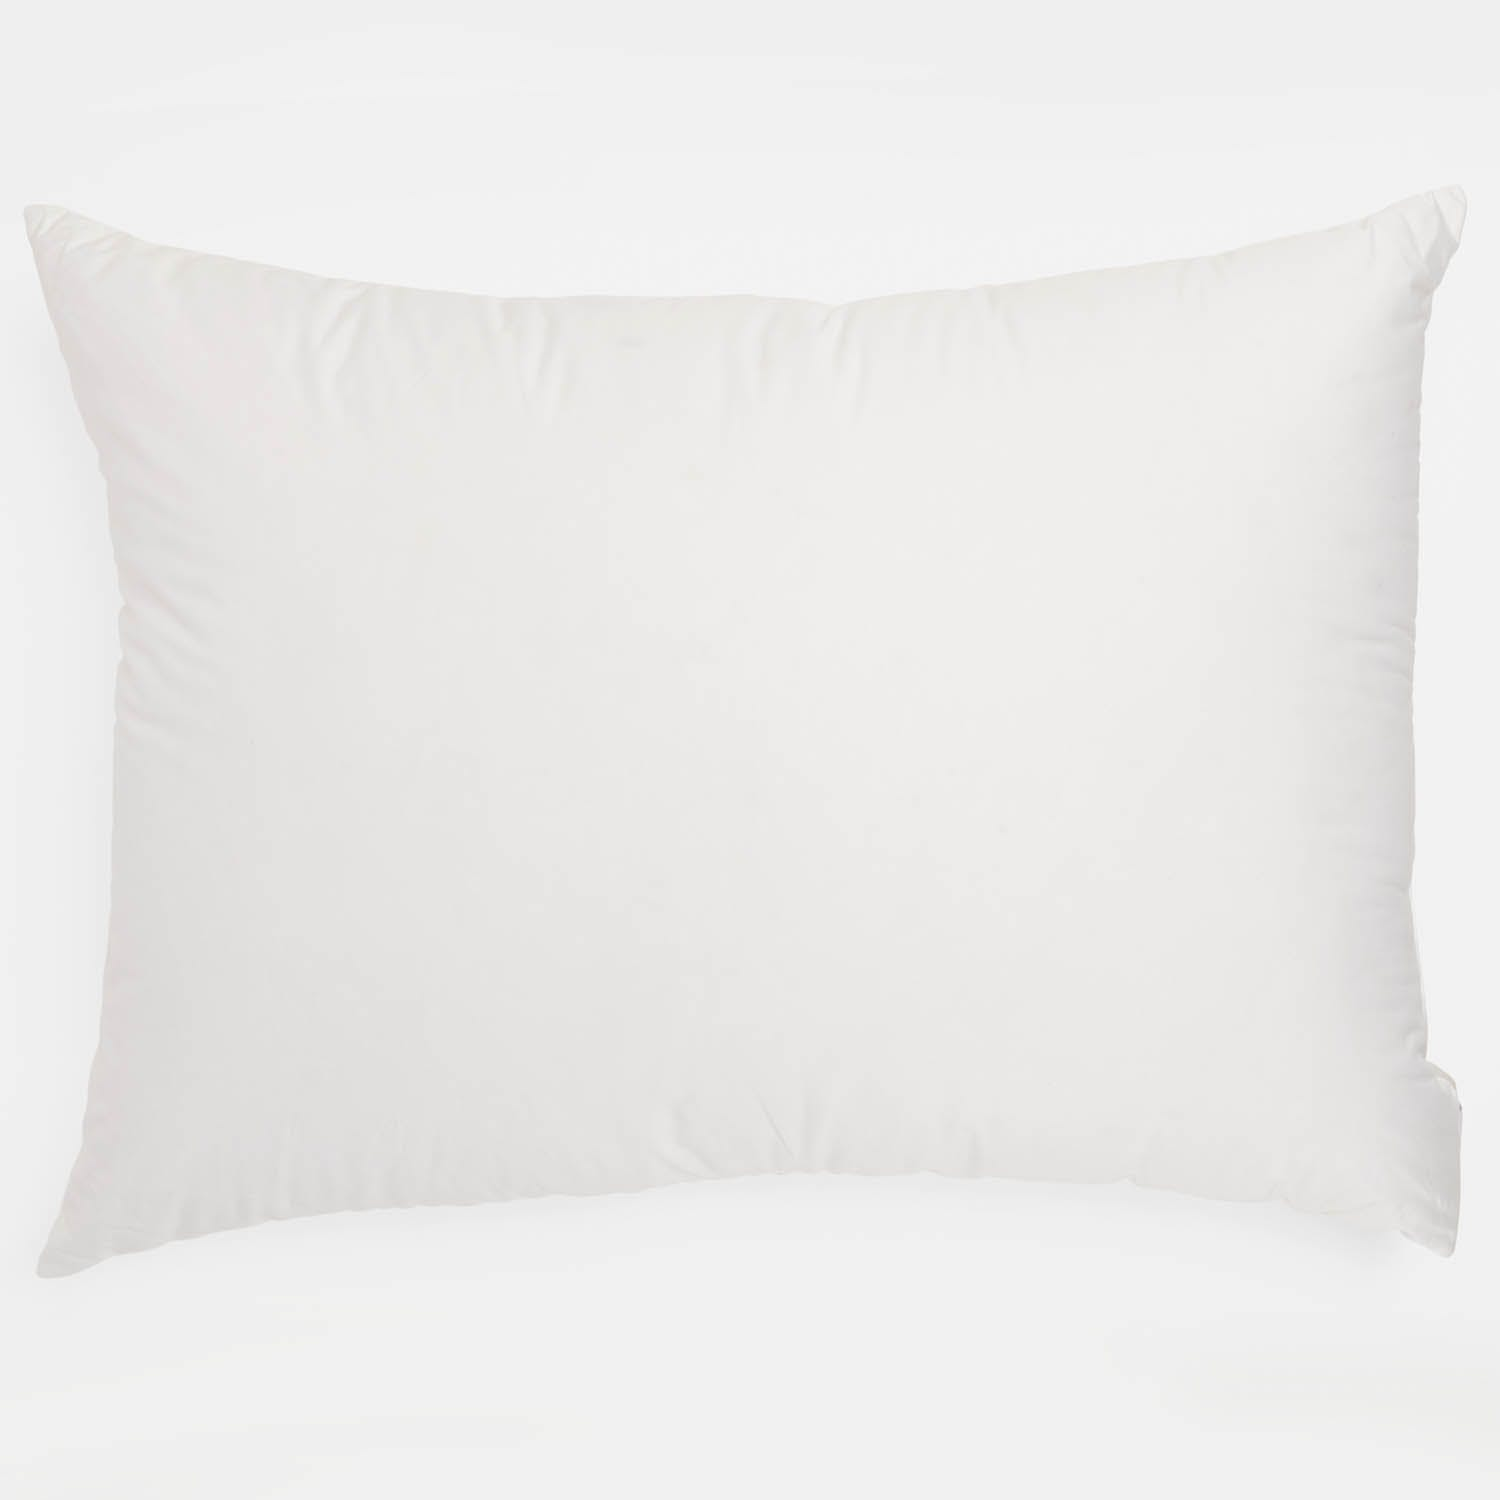 Product Image - Bliss Super-Soft Pillow